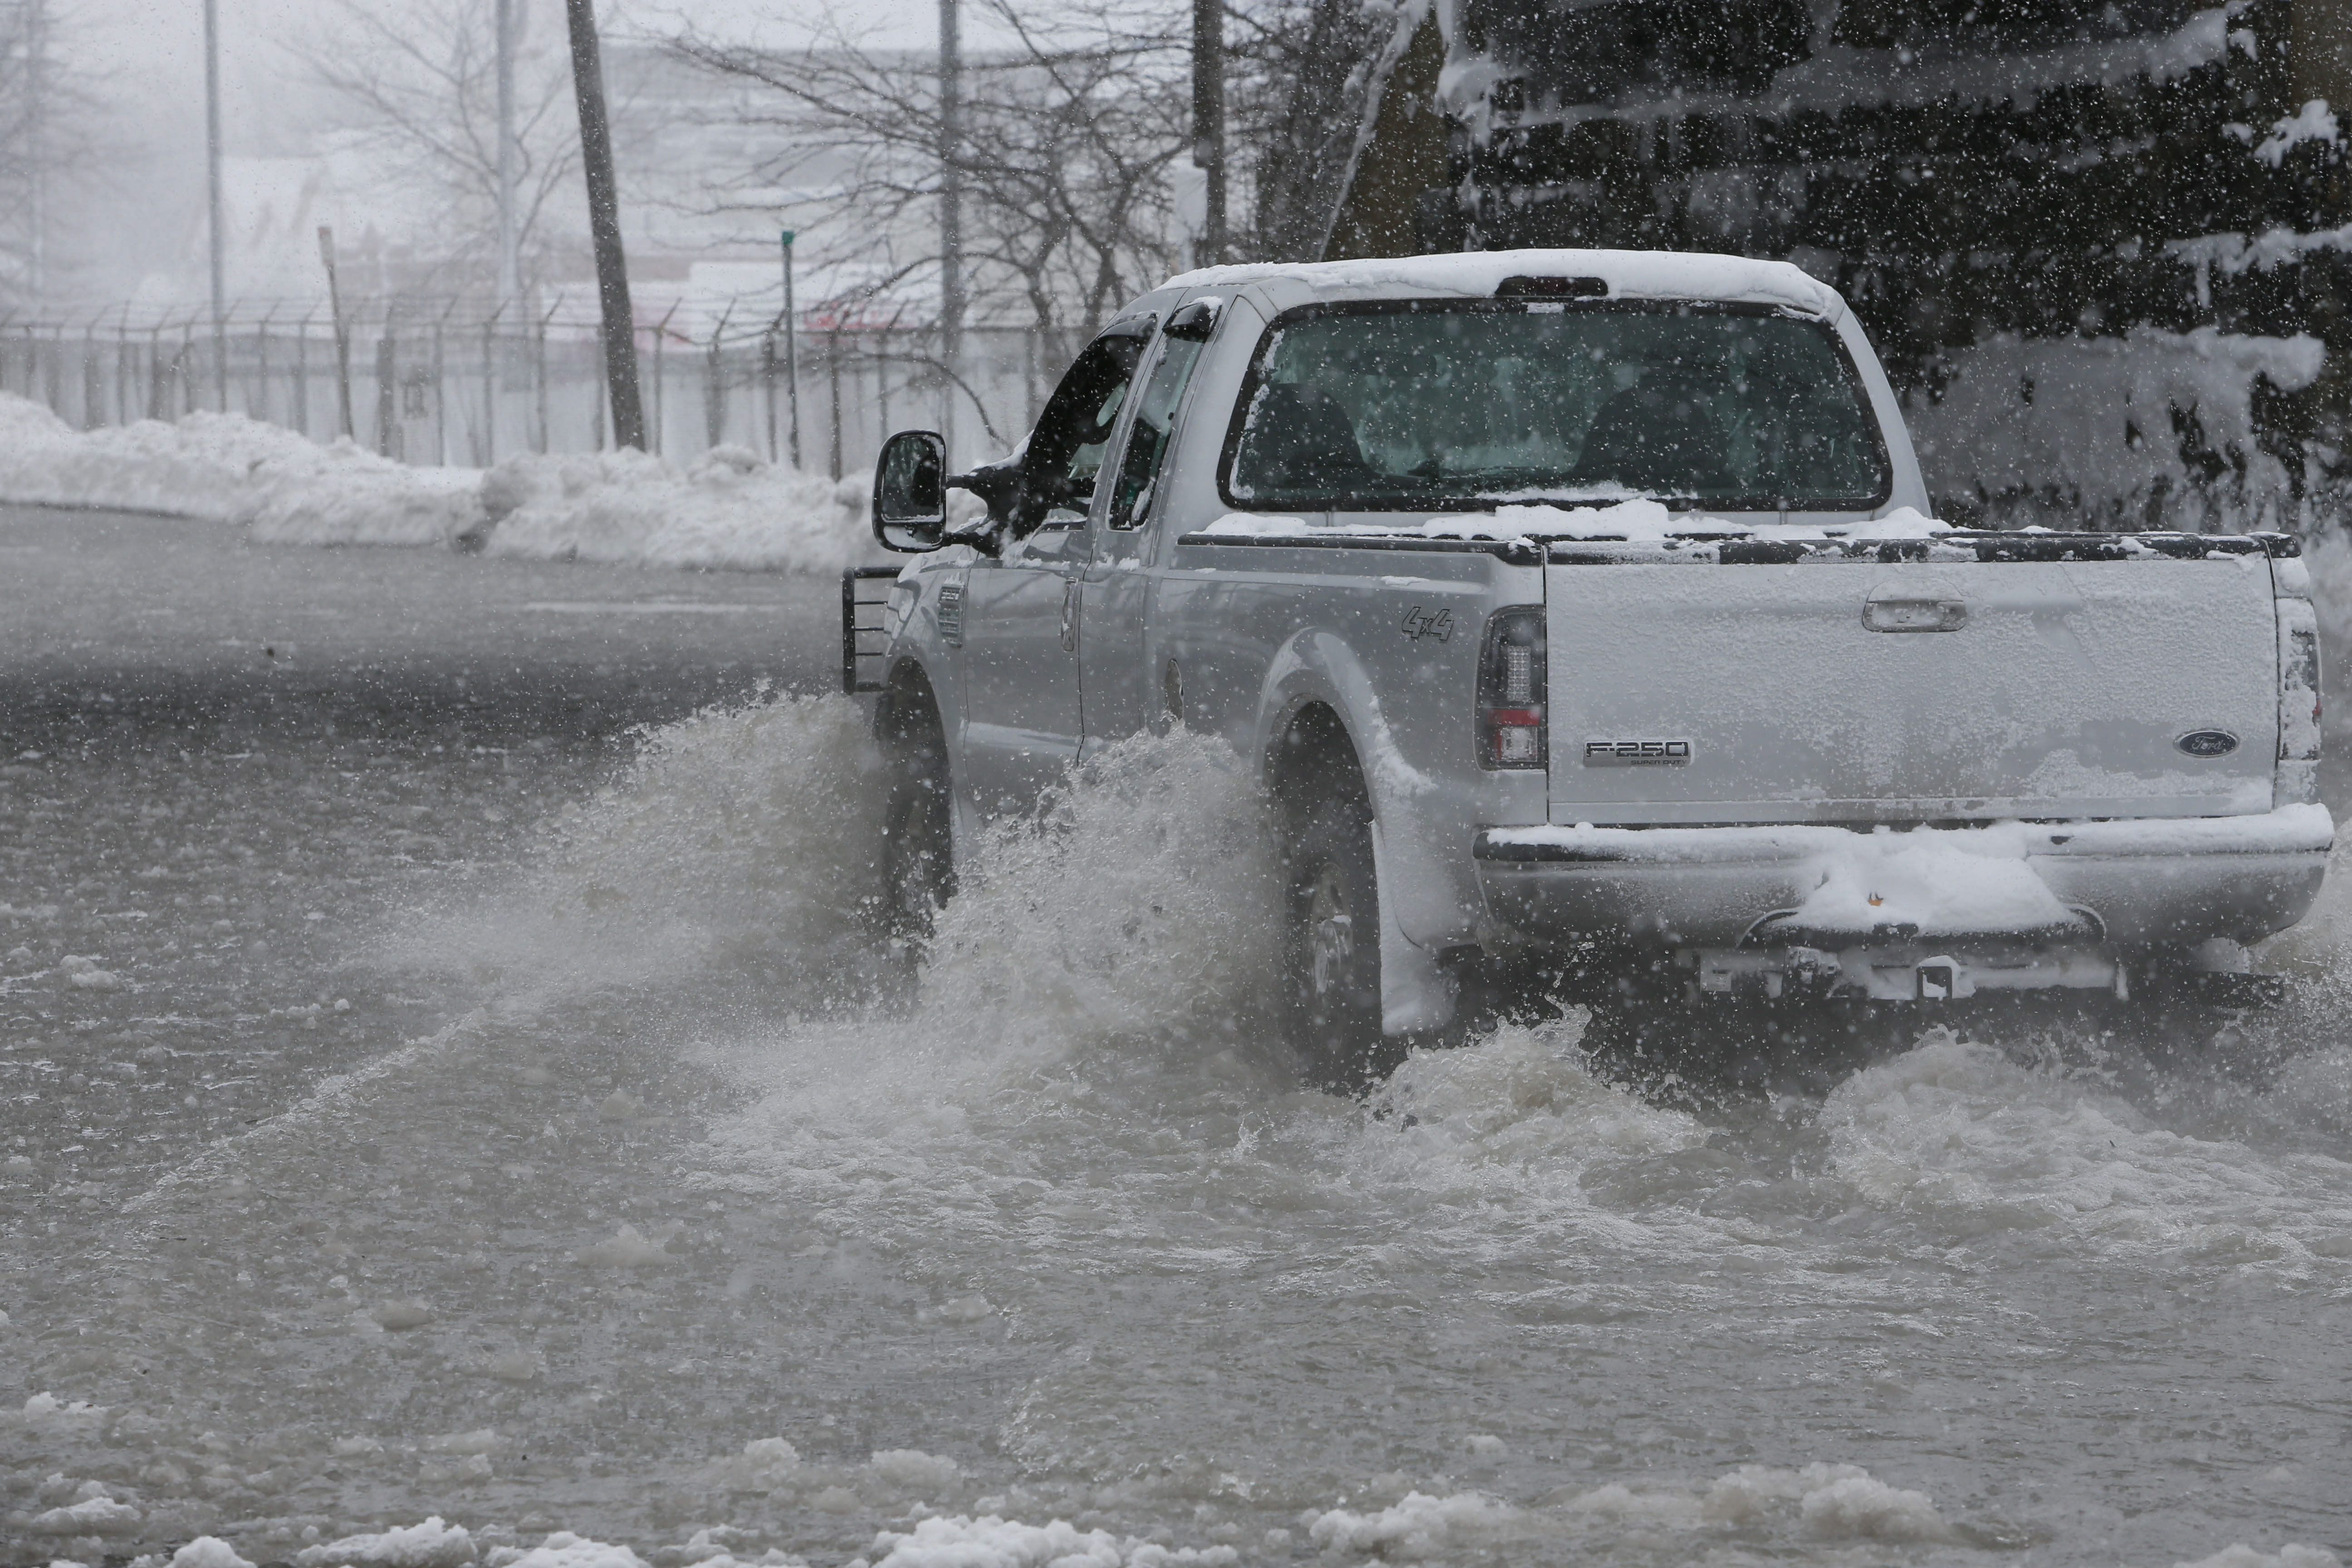 A truck passes through standing water on Route 5 near the former Bethlehem Steel plant in Lackawanna on Wednesday.